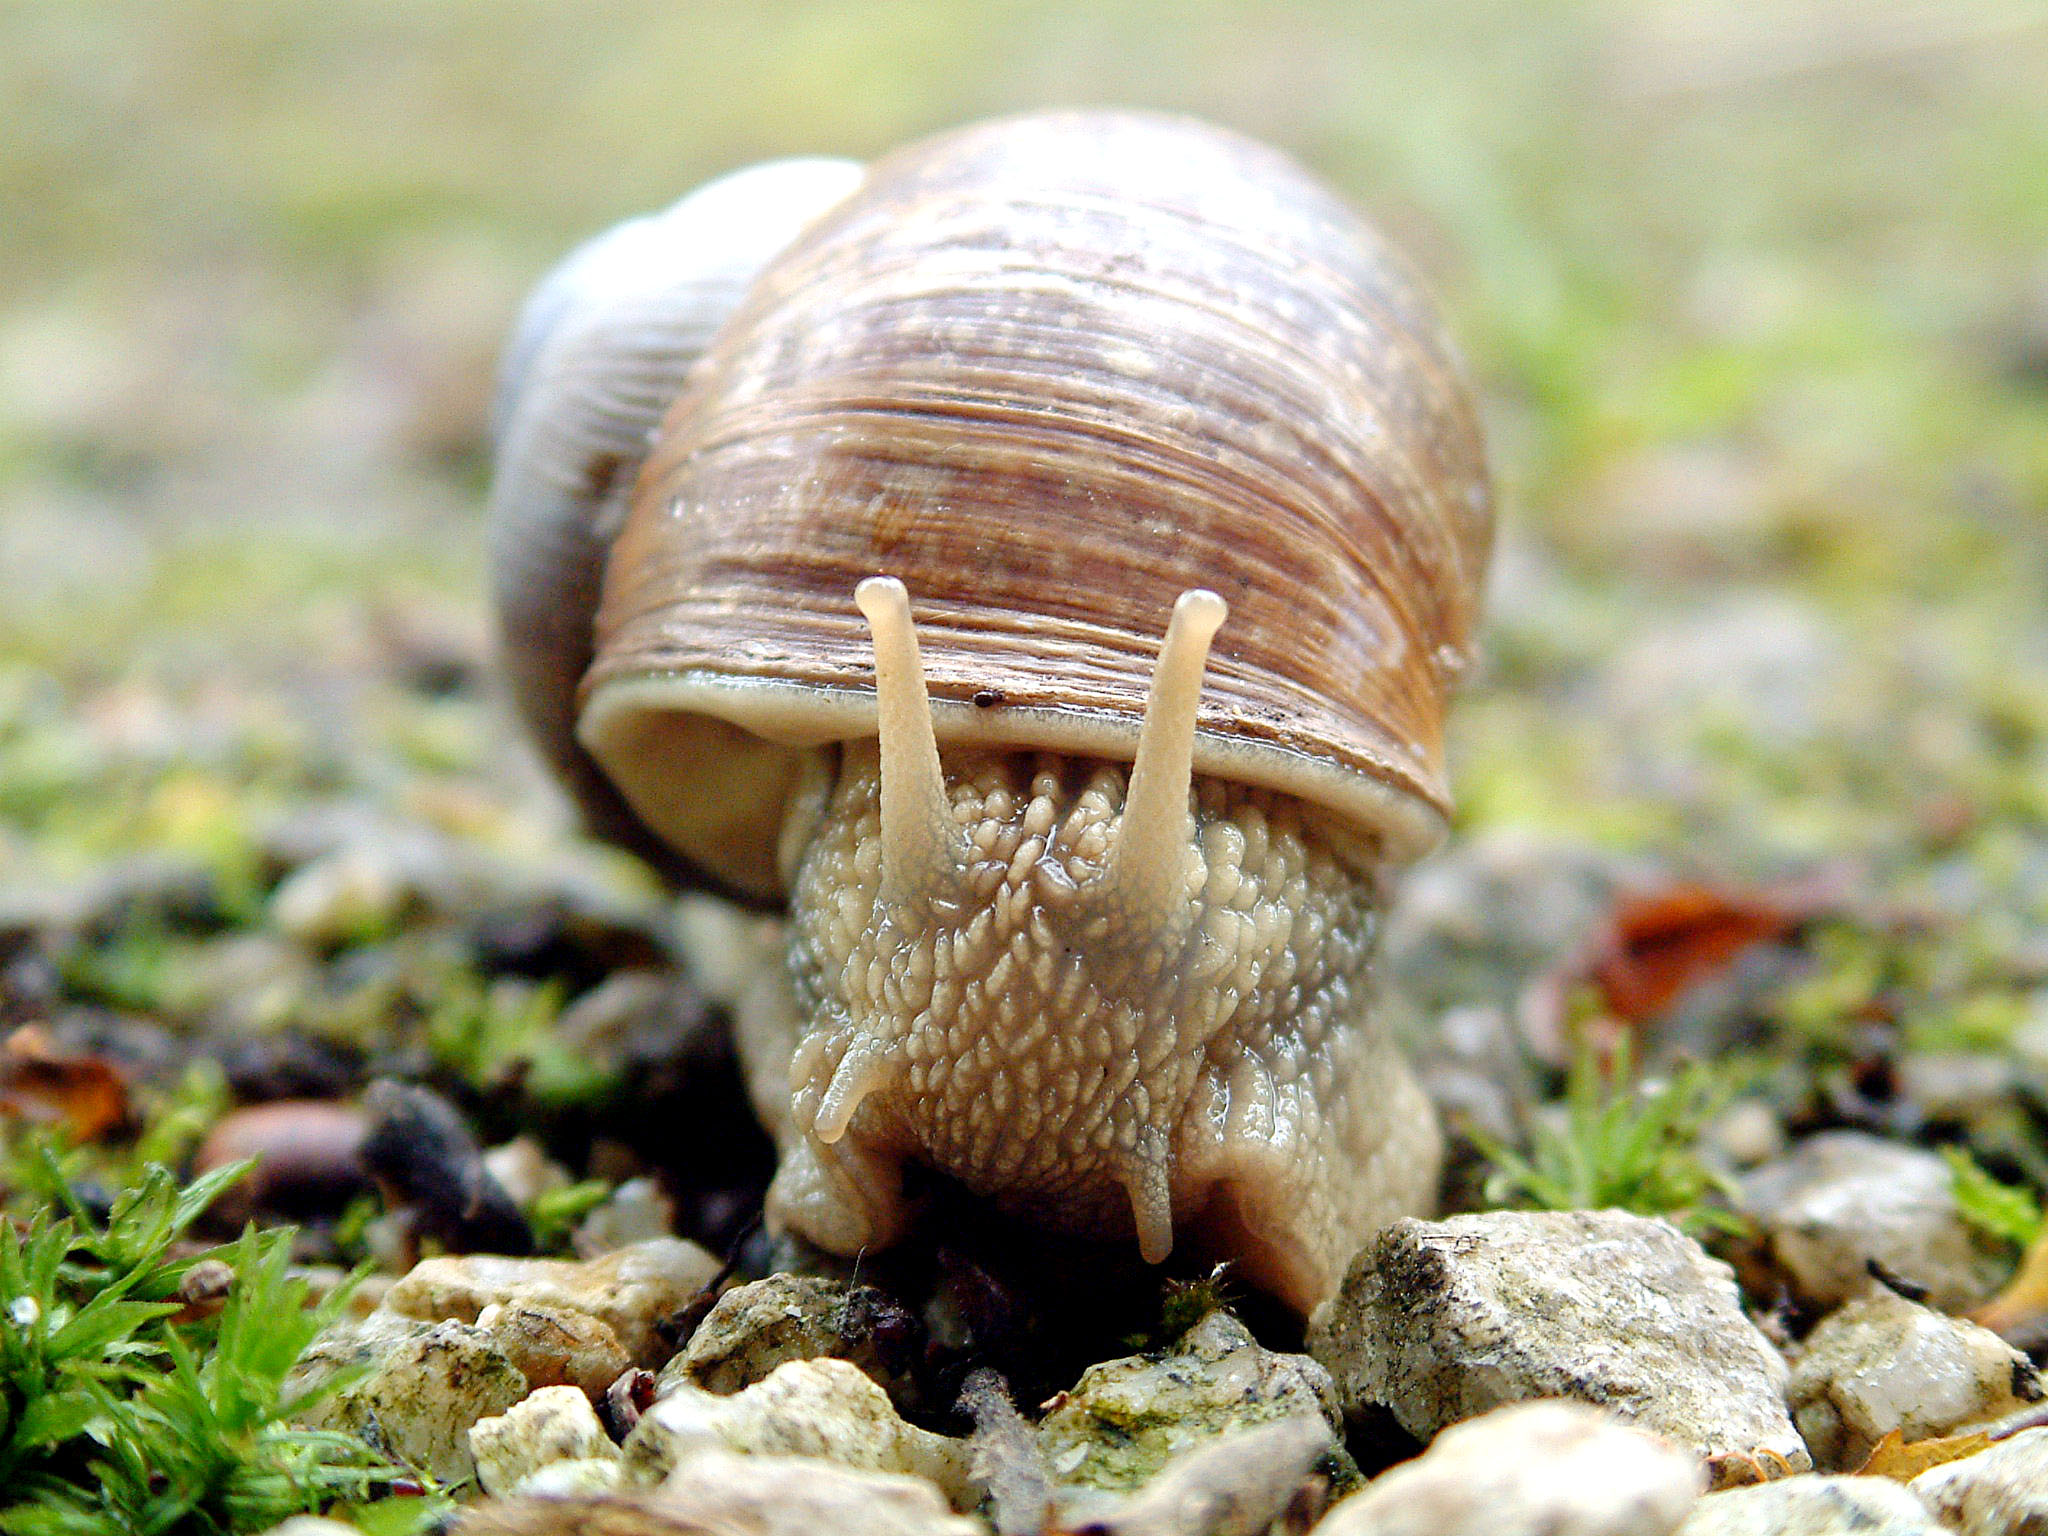 Snail Close-Up